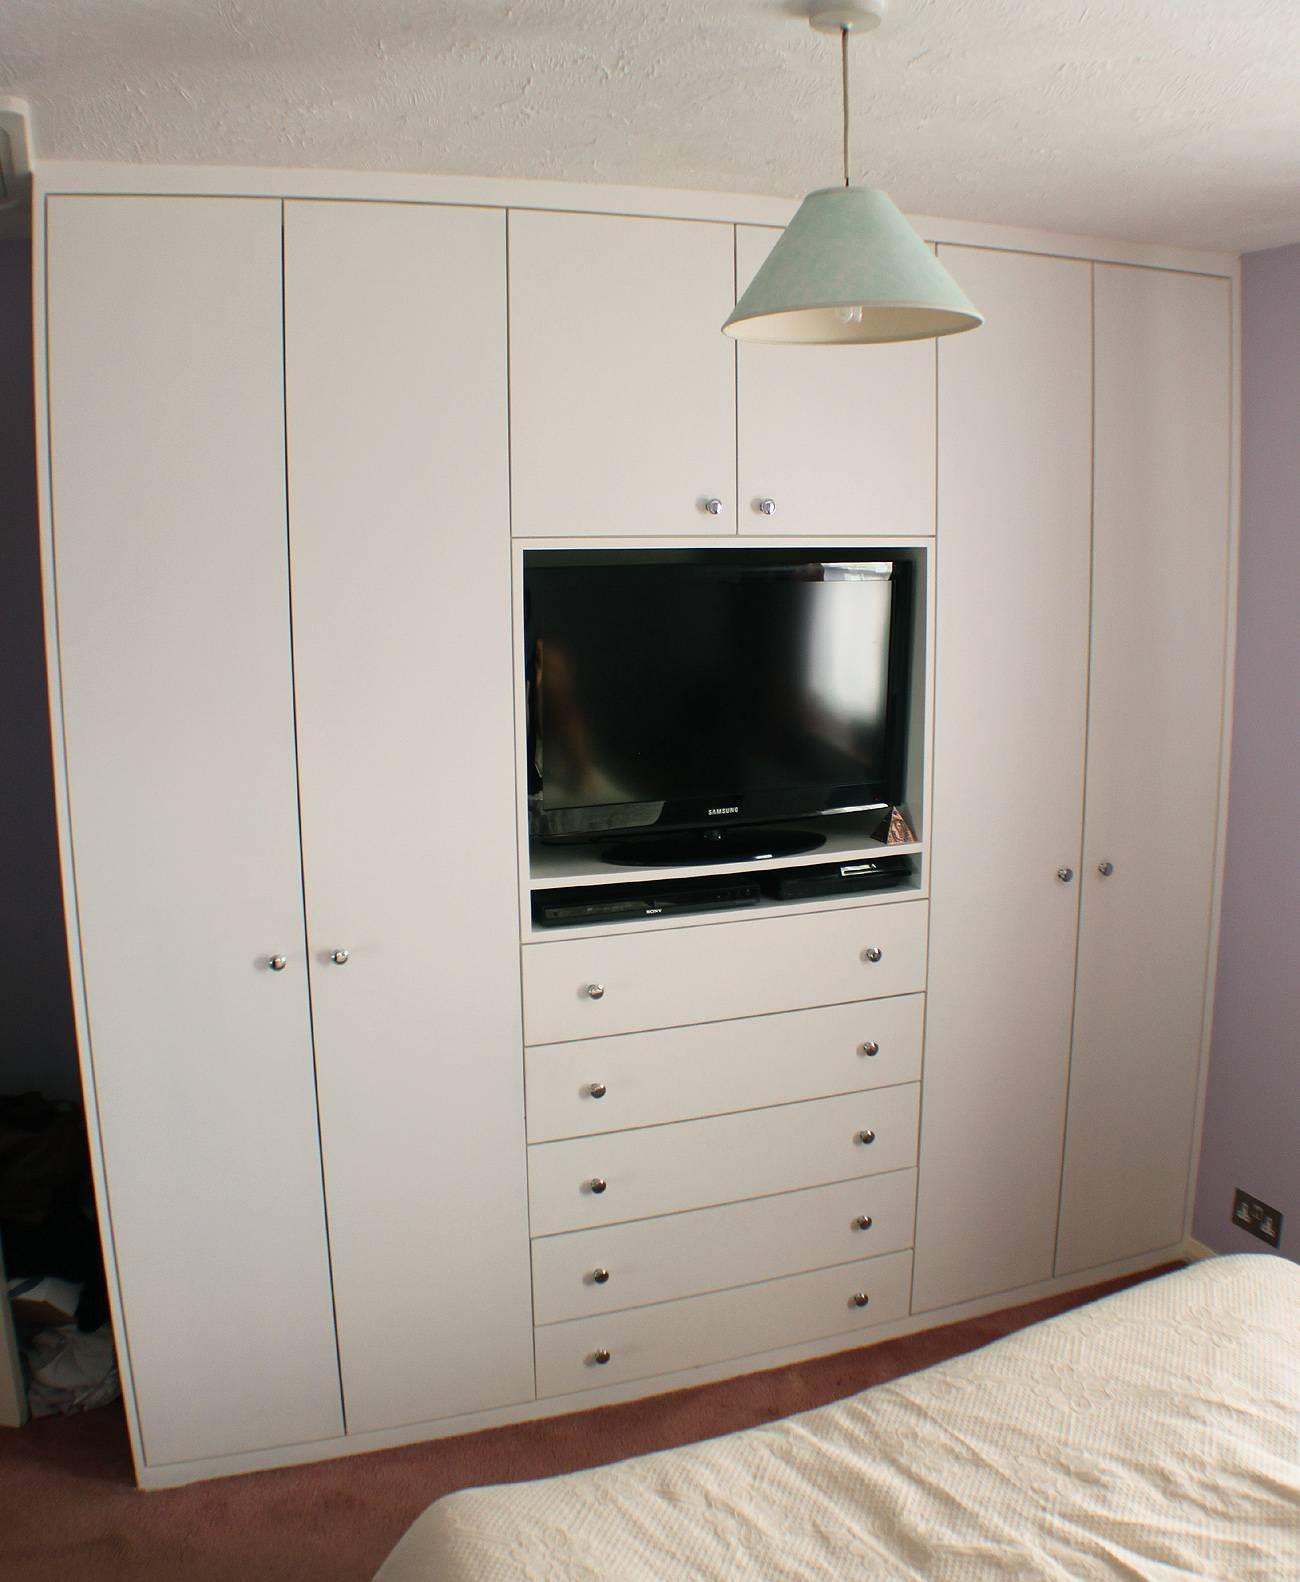 Fitted Sliding Mirror Wardrobes Are A Great Start To Any Bedroom intended for Built in Wardrobes With Tv Space (Image 22 of 30)